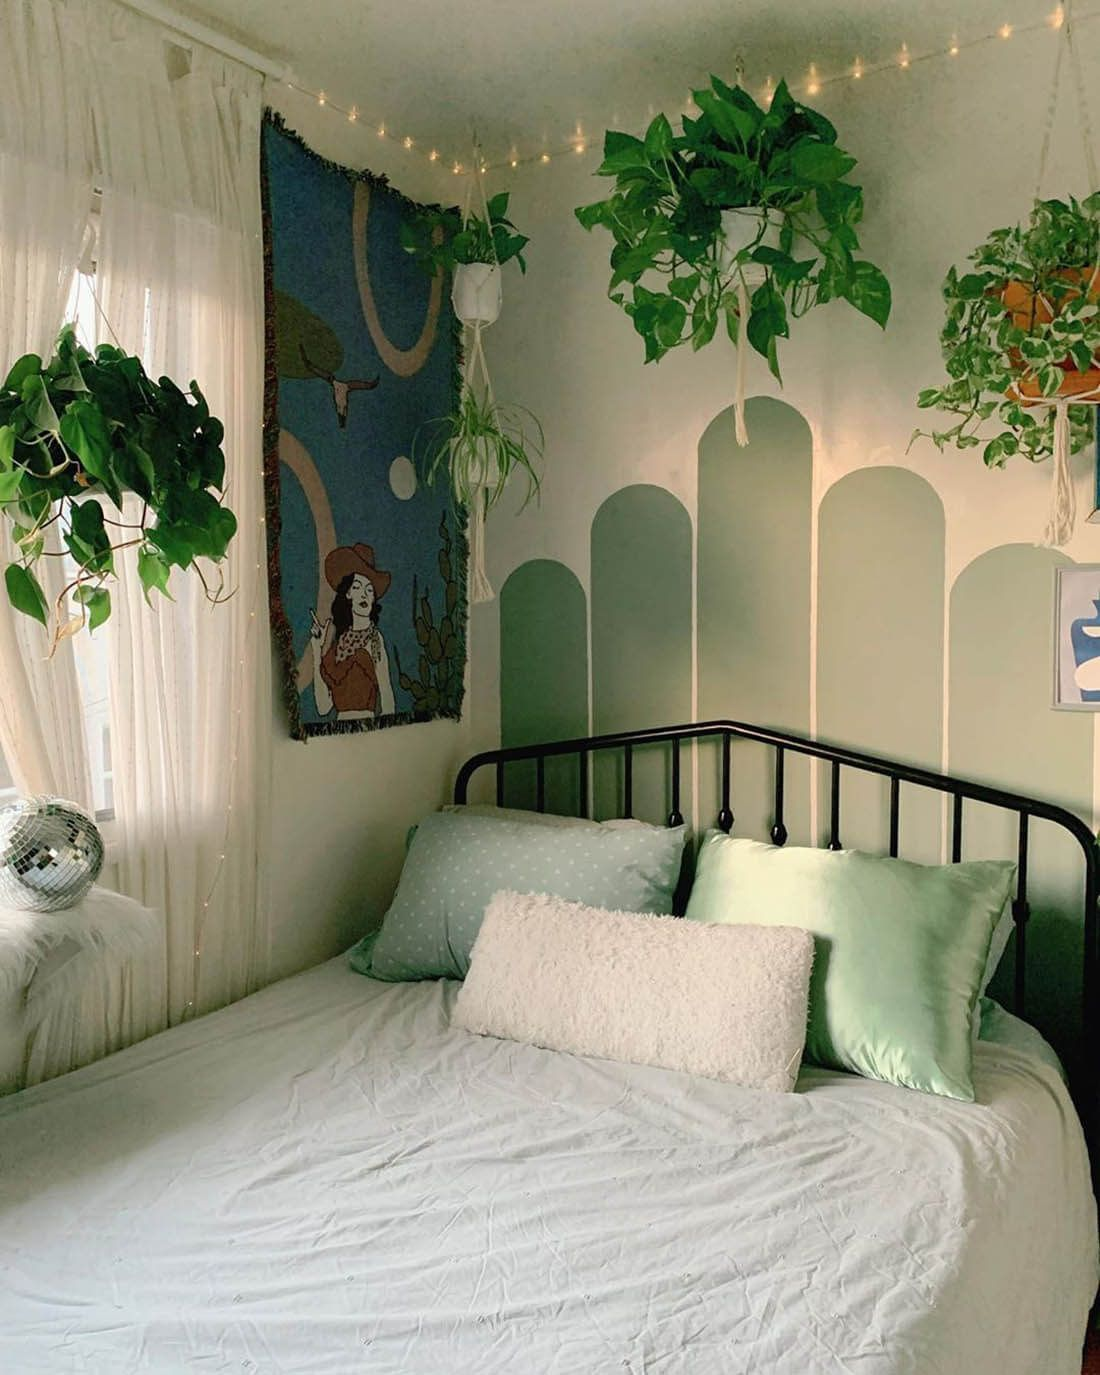 Painted Arch Walls Are So Hot Right Now Trending Little Gold Pixel Bedroom Decor Bedroom Wall Home Decor